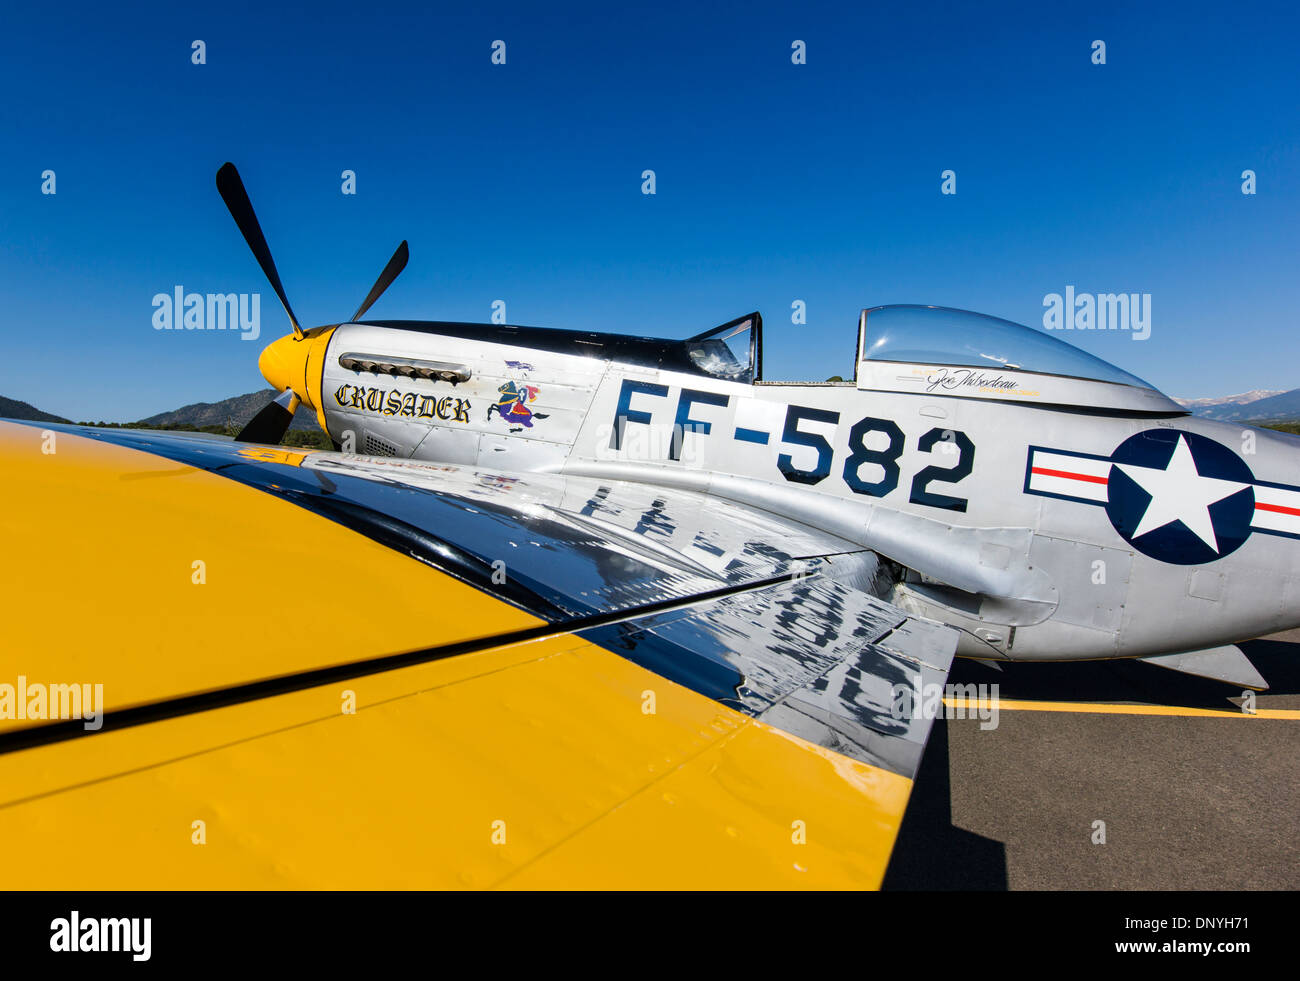 North American Aviation P-51 Mustang was an American long-range, single-seat fighter and fighter-bomber - Stock Image